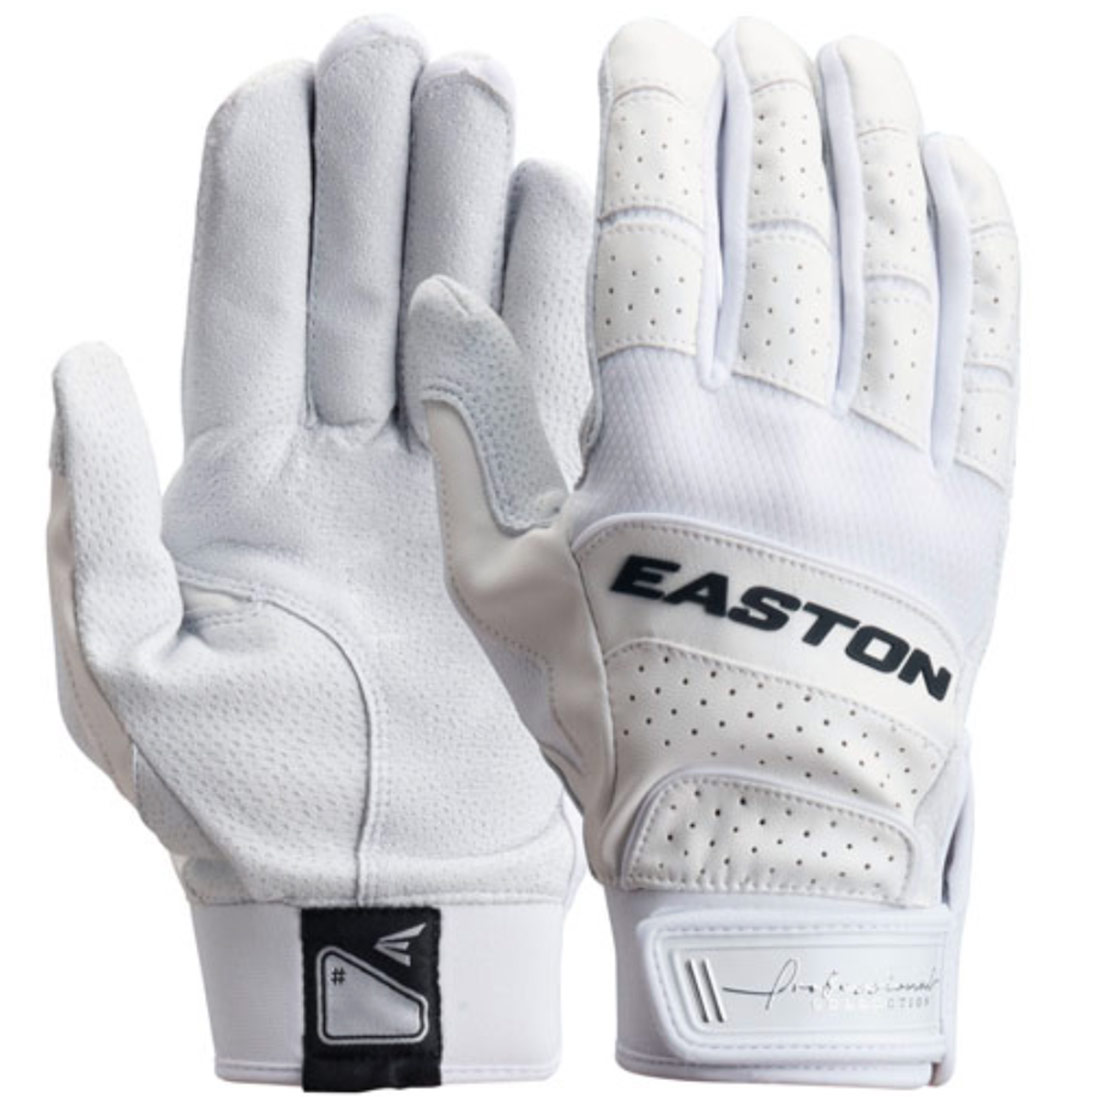 Easton Professional Collection Batting Gloves (Adult Pair)